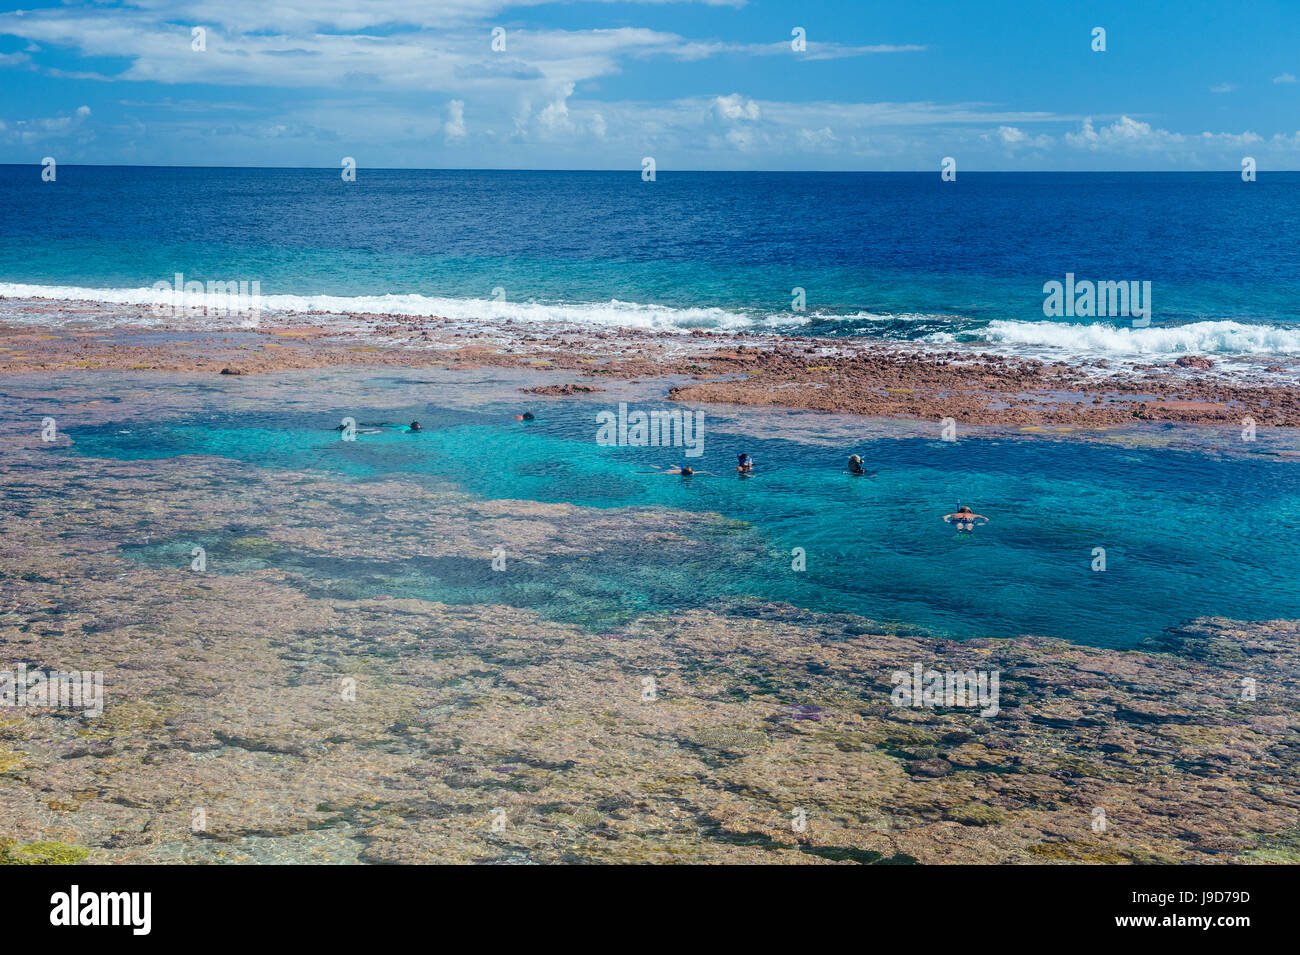 People swimming in the amazing Limu low tide pools, Niue, South Pacific, Pacific - Stock Image